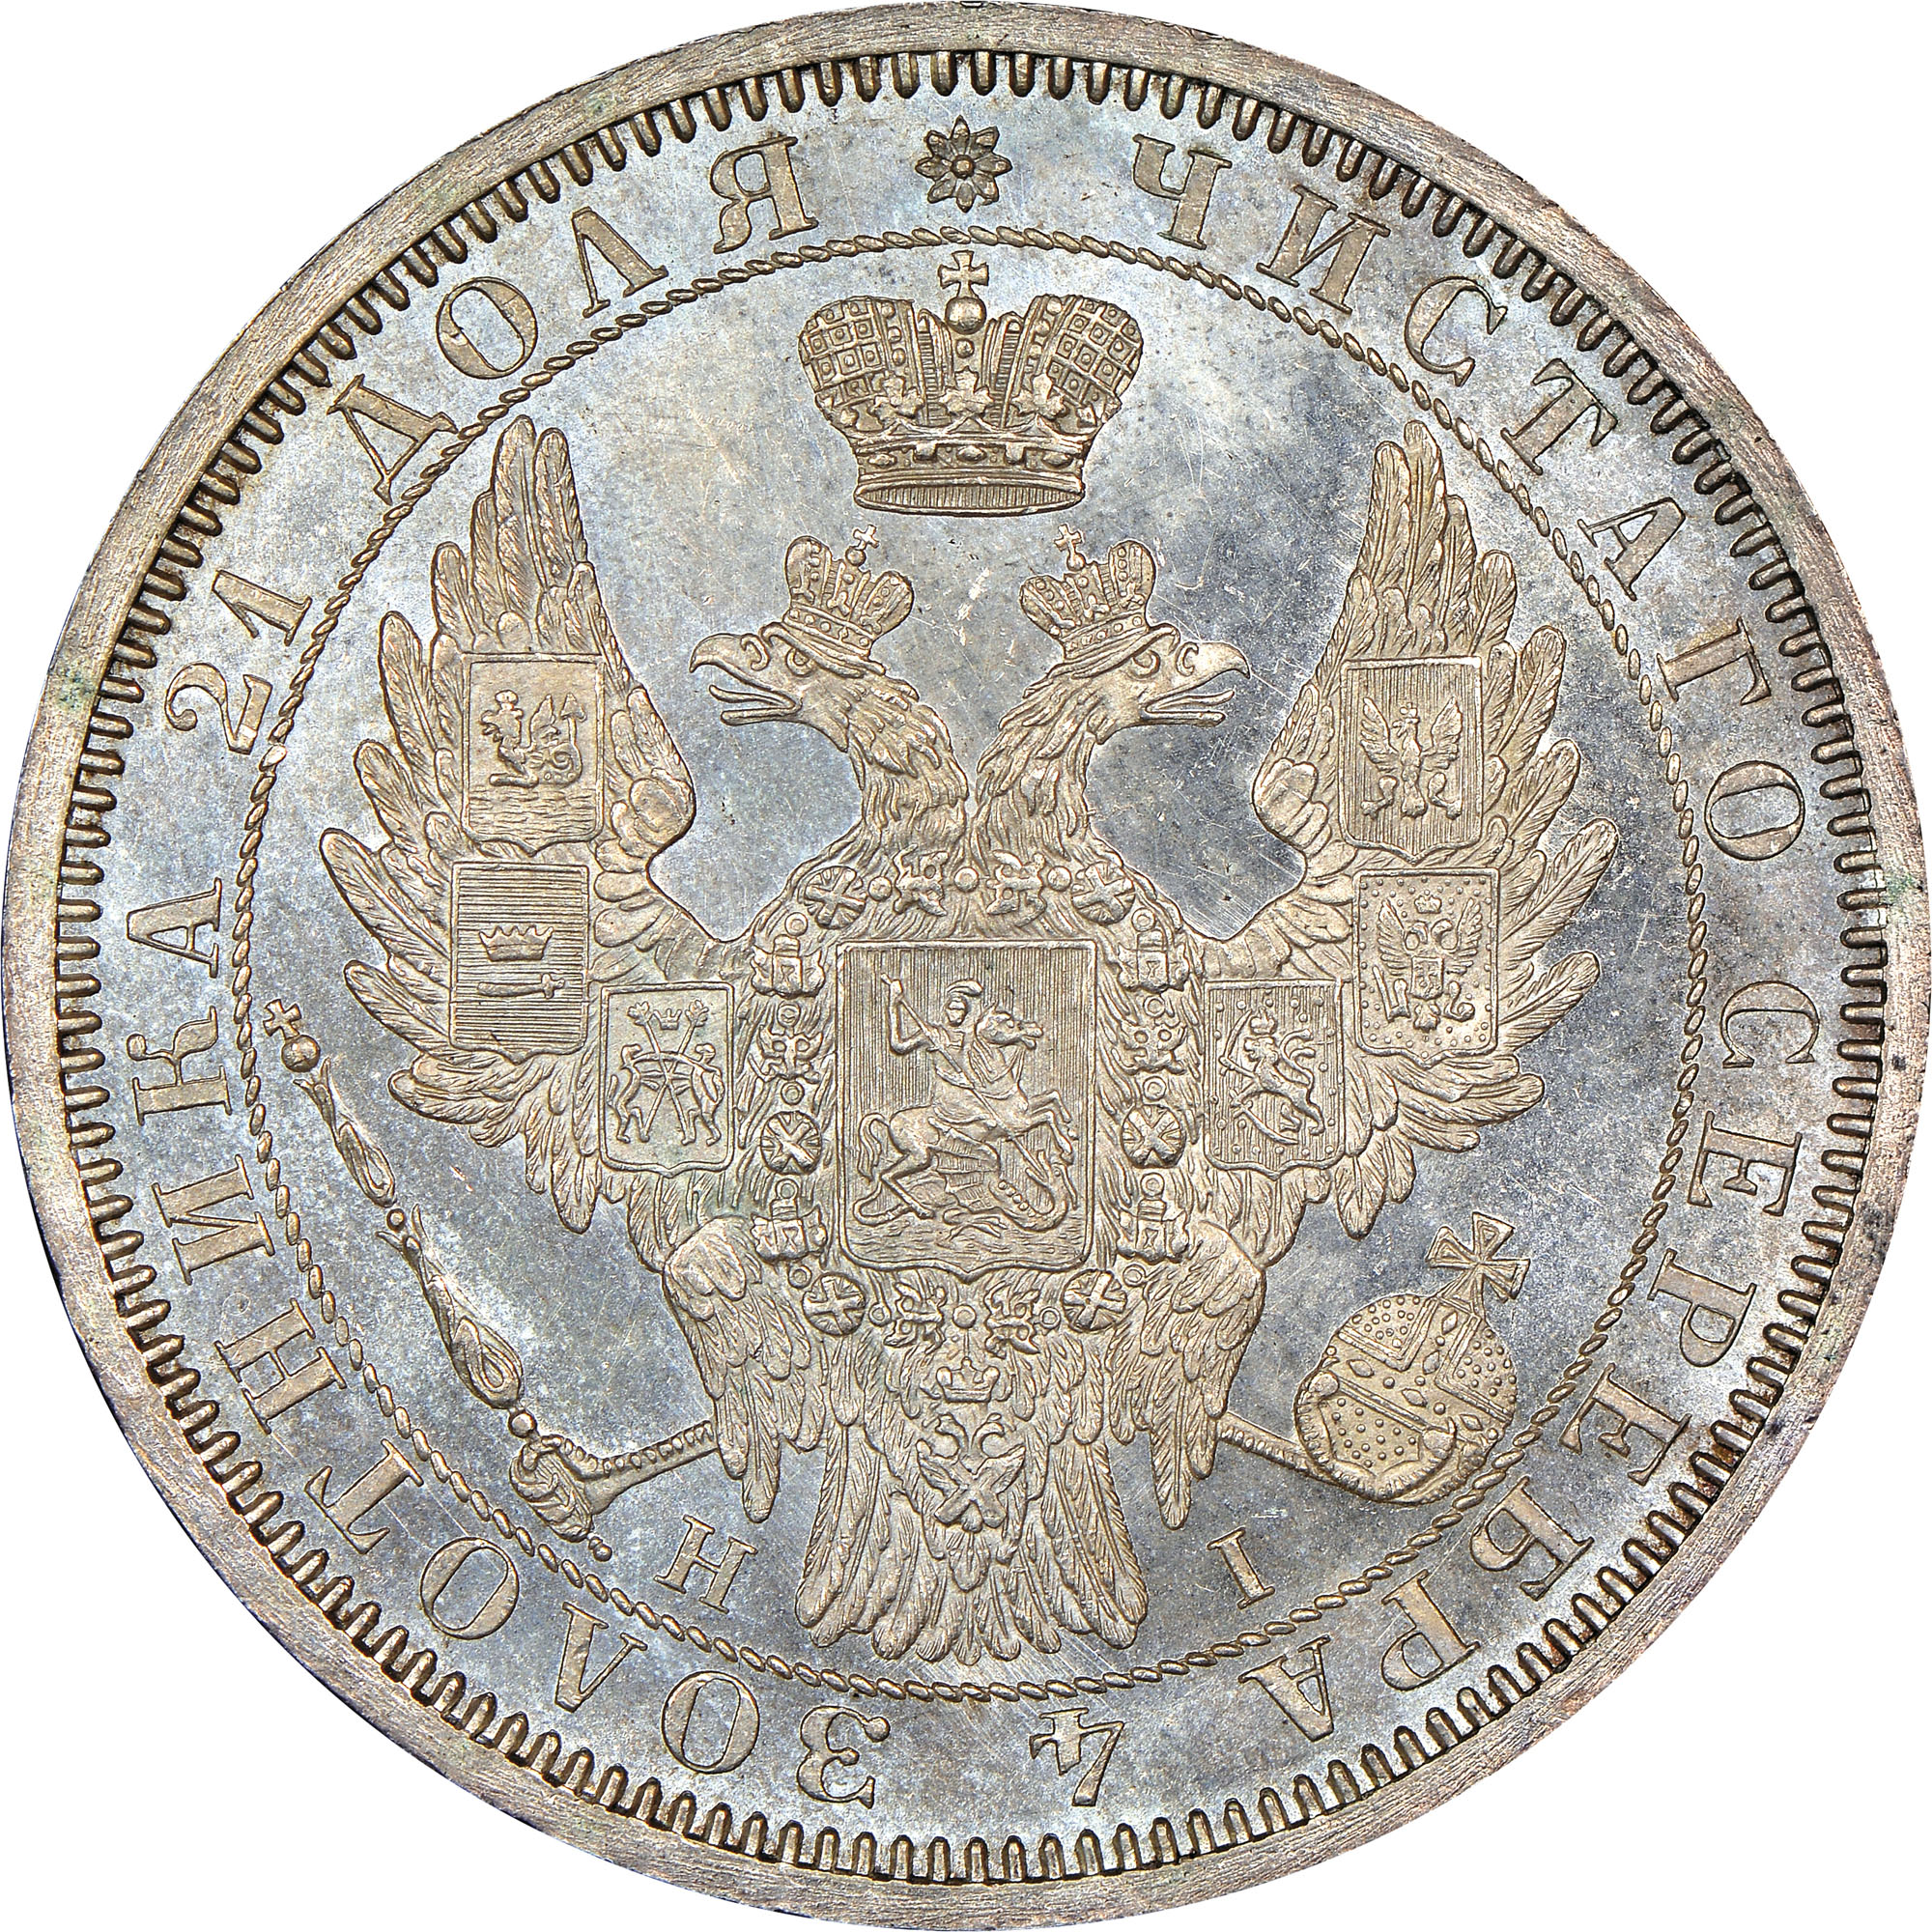 Russia Rouble obverse